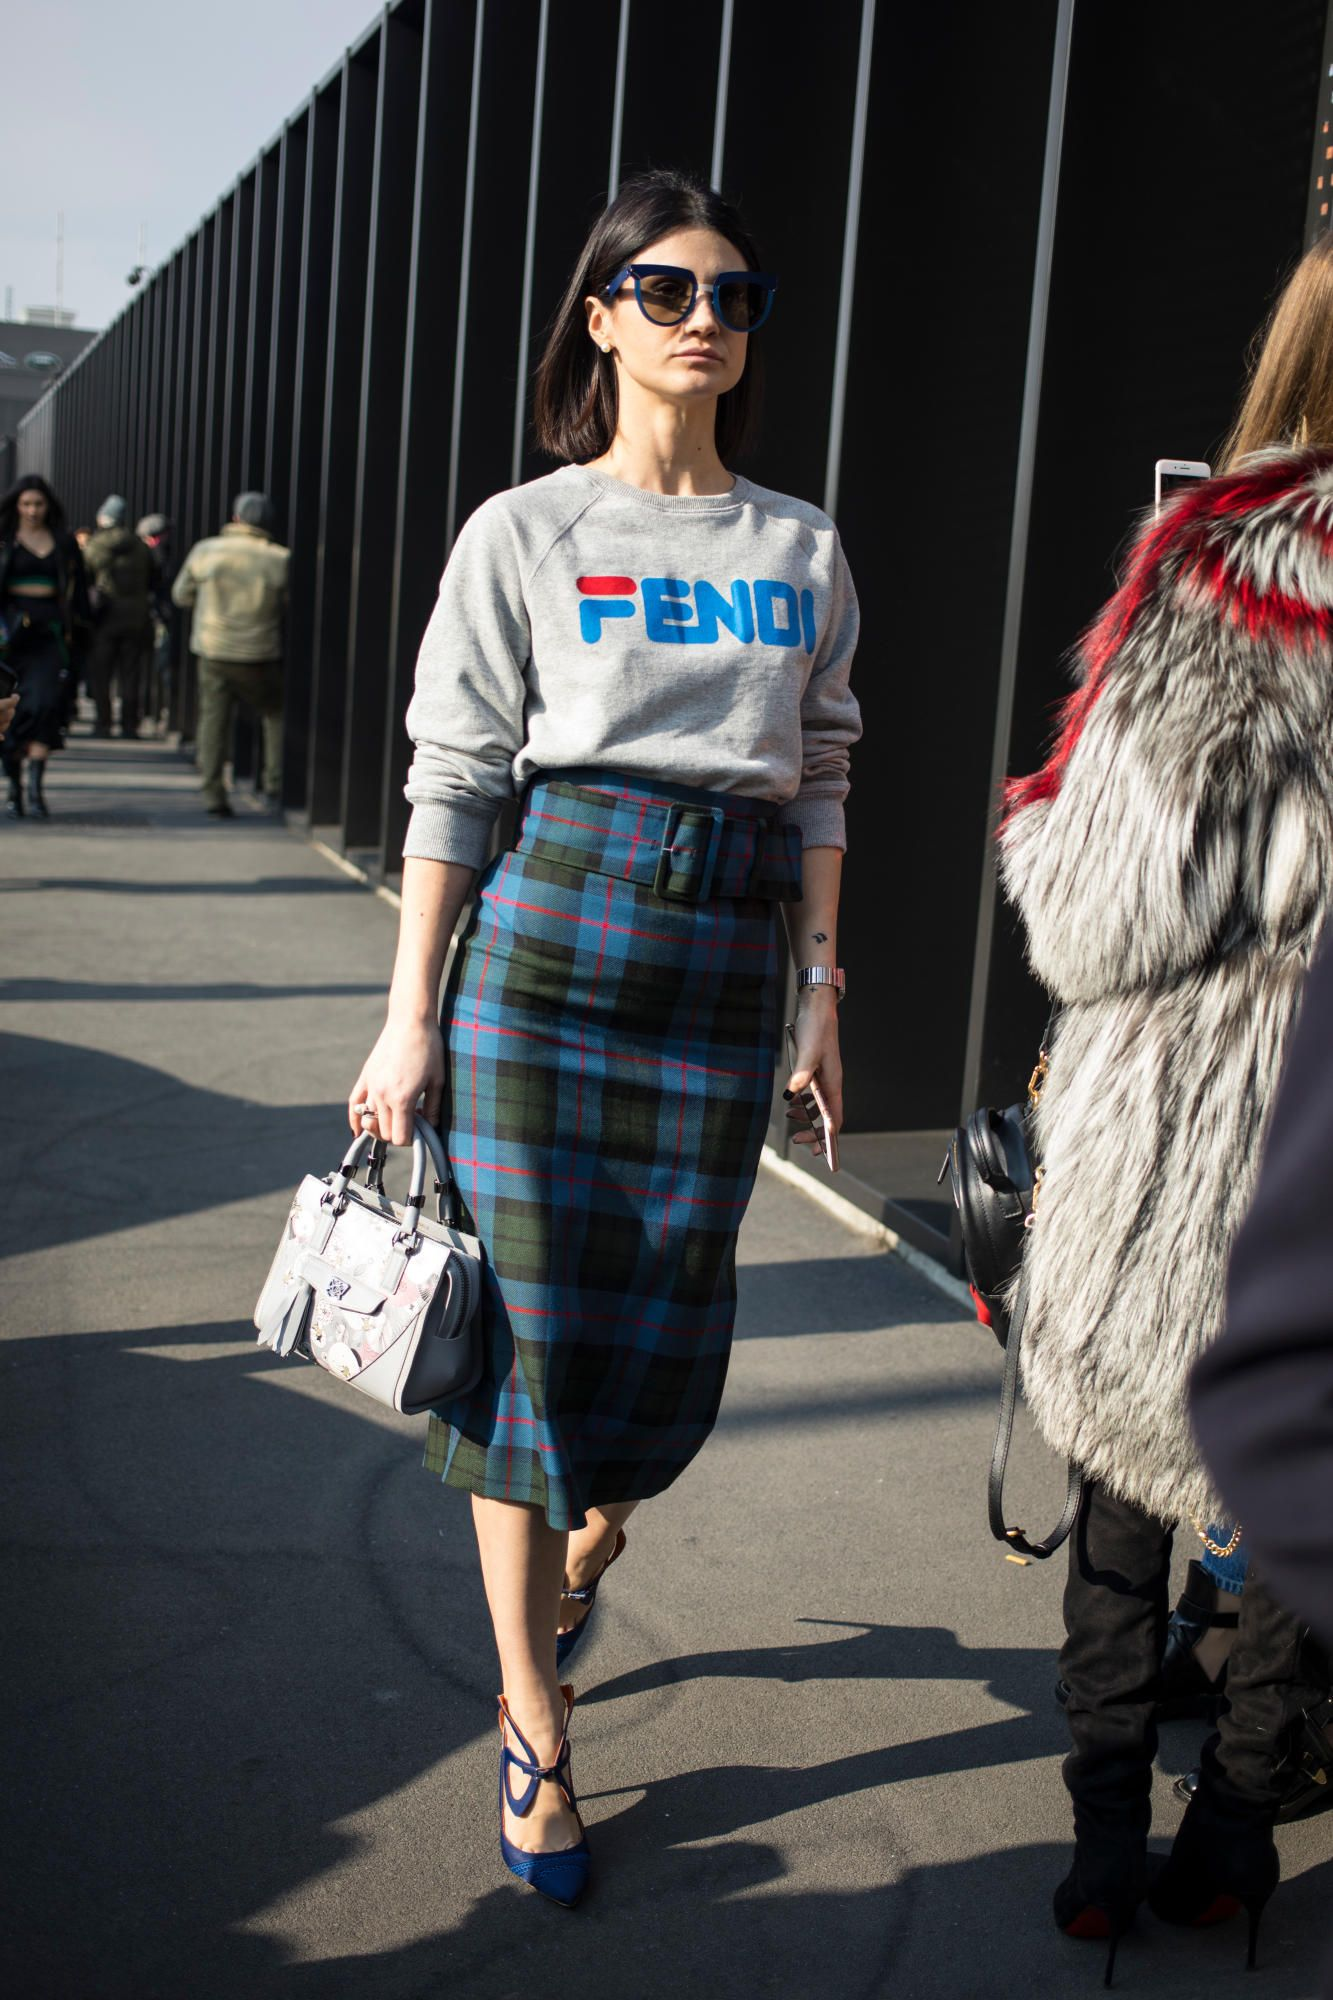 99 New Trends Bathroom Tile Design Inspiration 2017 29: Leopard Print And Gucci Logos Took Over Street Style On